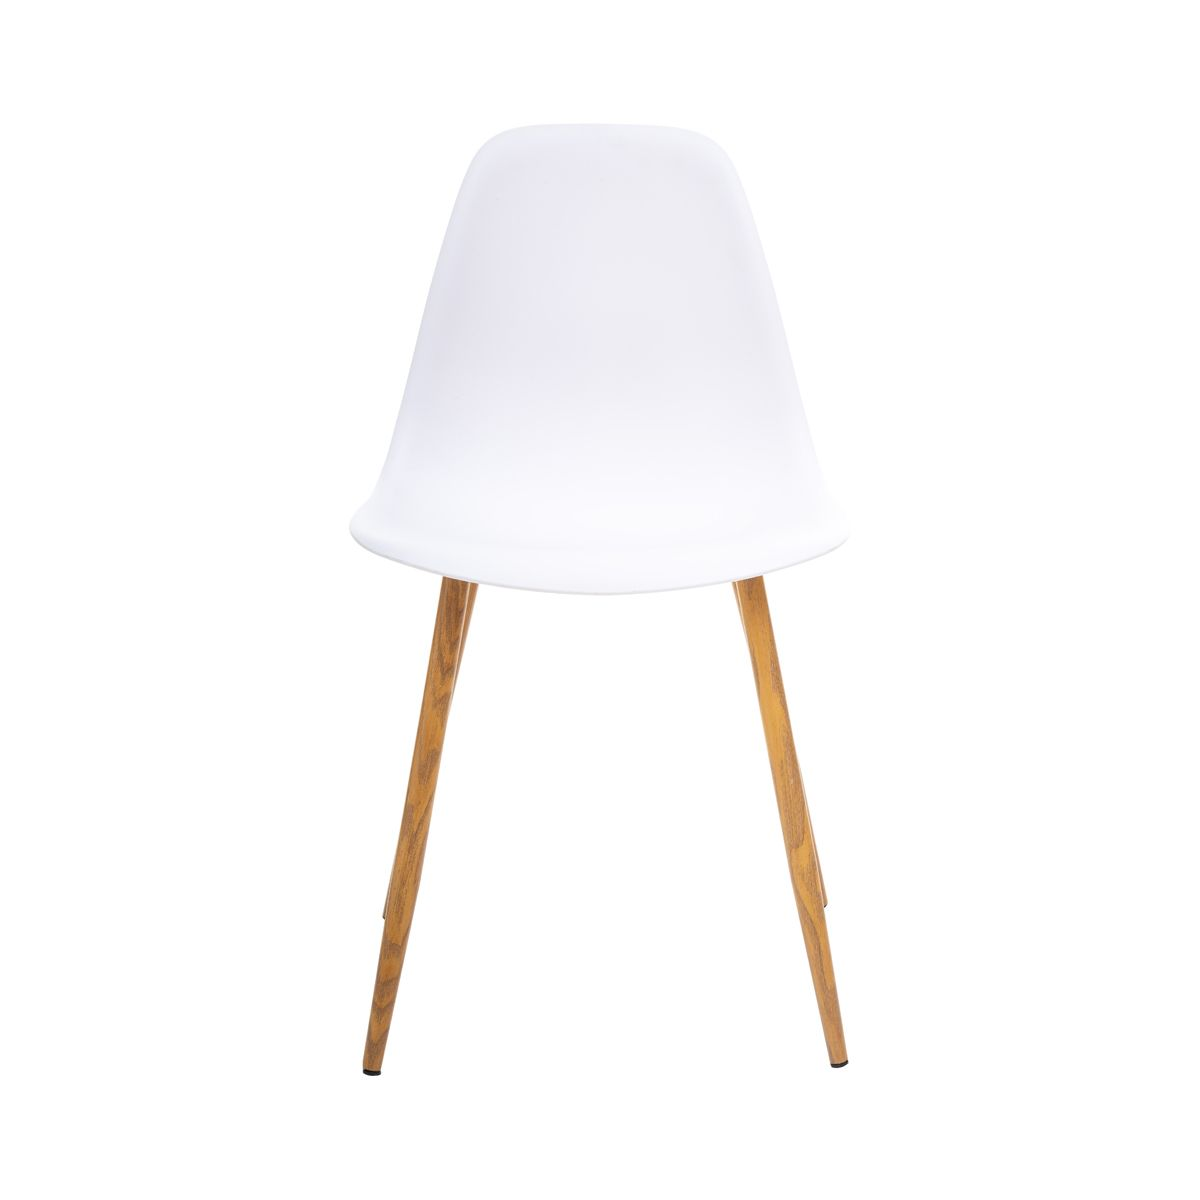 Chaise scandinave blanche